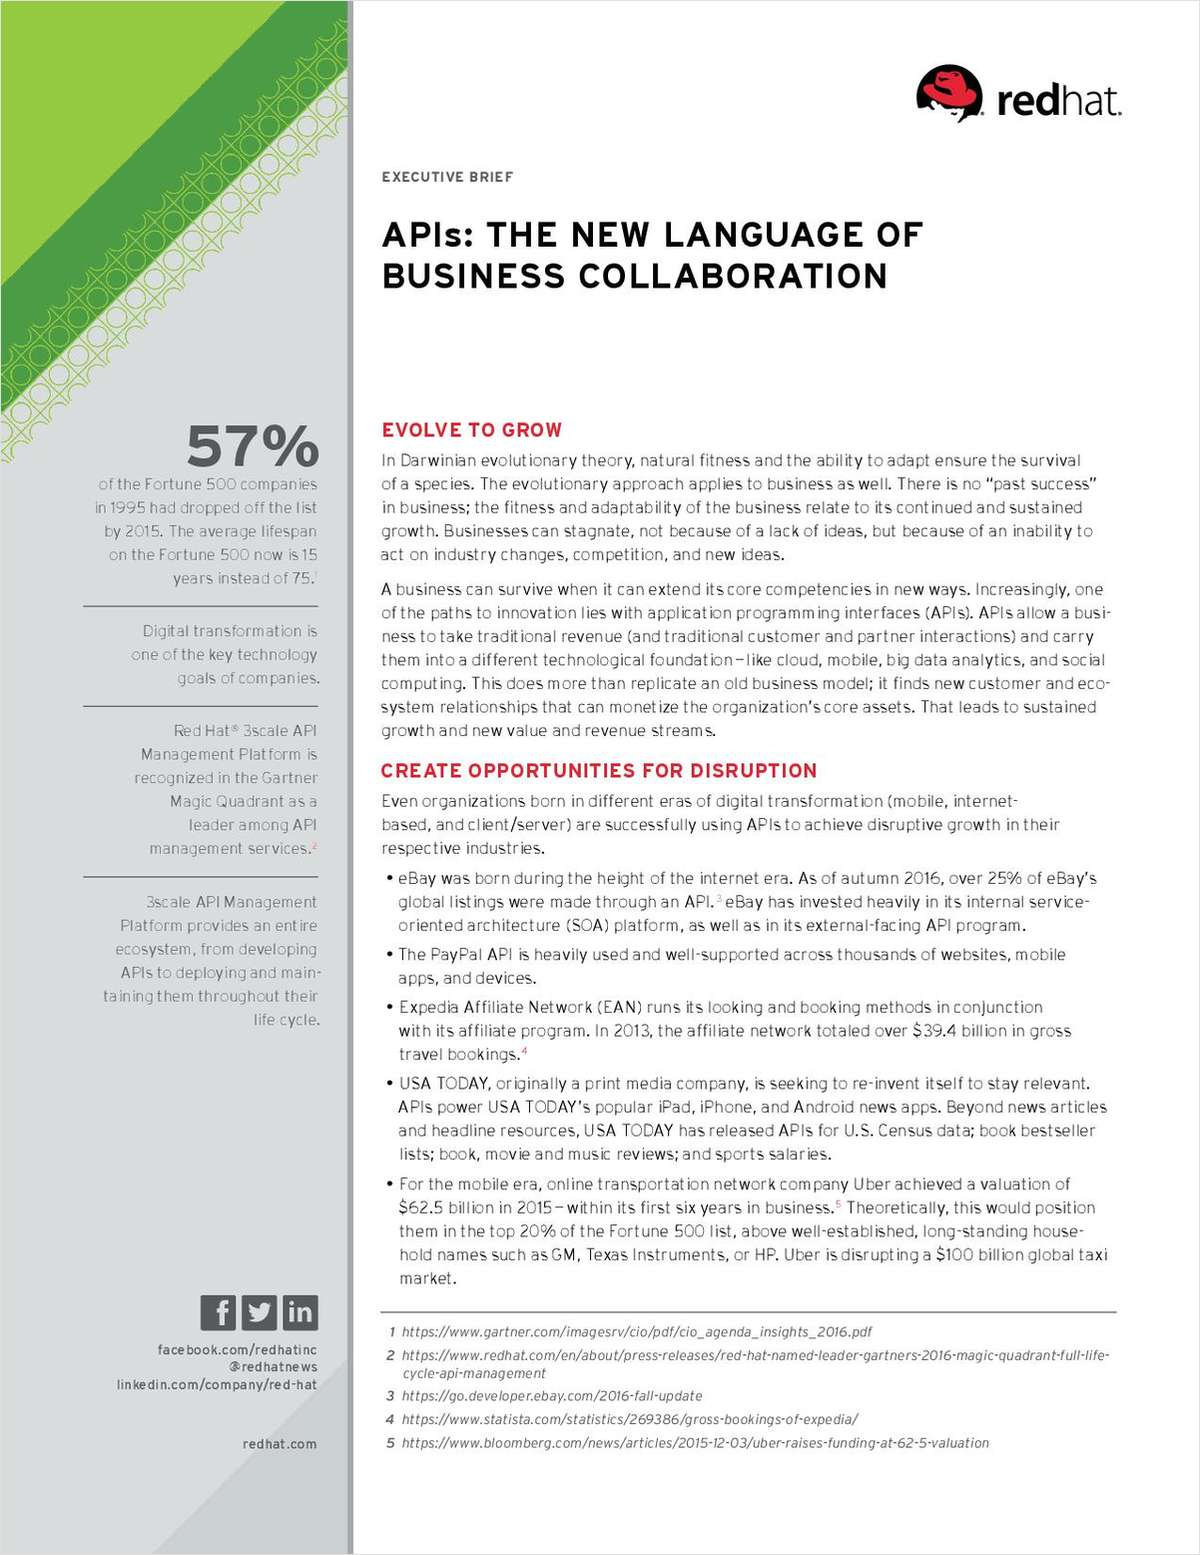 APIs: The new language of business collaboration